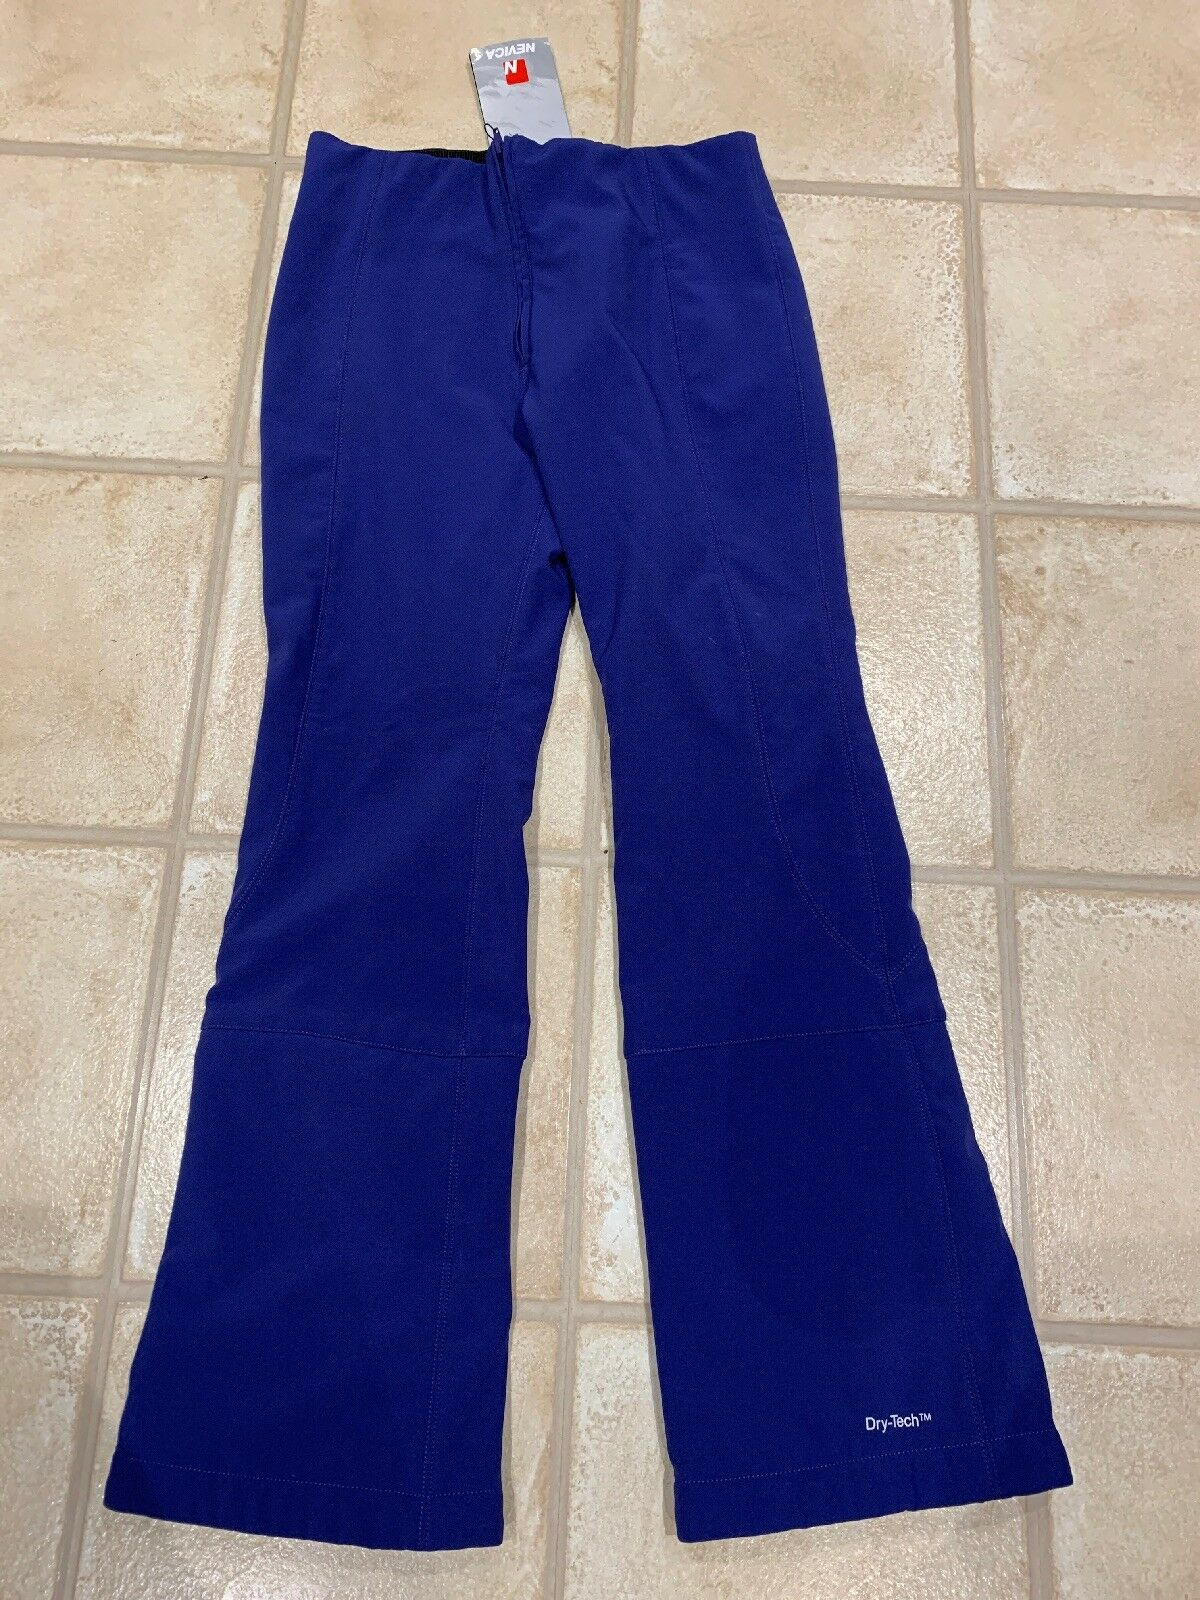 BNWT NEVICA Ginger Ski Pant Ladies Purple bluee Size 14 Large RRP